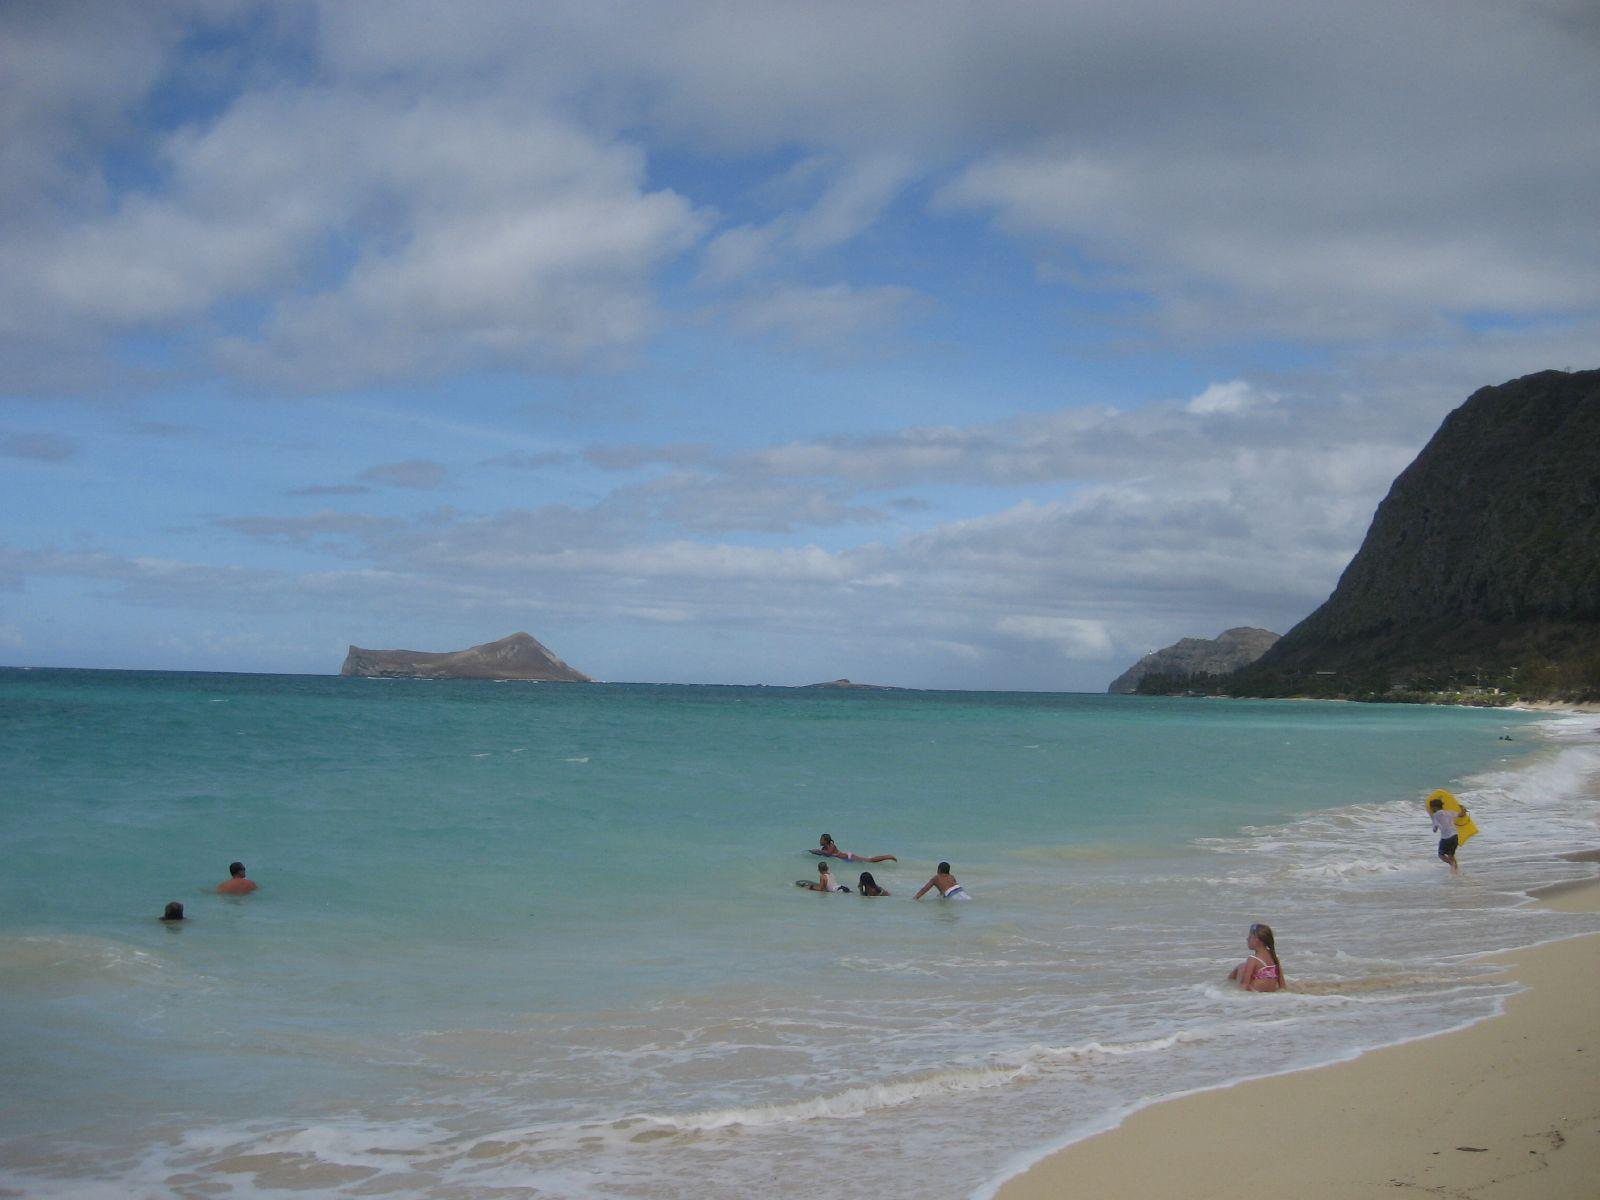 "Oahu Windward (East) Shore<br />Photo <a href=""//creativecommons.org/licences/by-nc-sa/3.0/"" class=""cc-small"" target=""_blank""><img typeof=""foaf:Image"" class=""image-style-none"" src=""//i.creativecommons.org/l/by-nc-sa/3.0/80x15.png"" width=""80px"" height=""15px"" alt=""Creative Commons Licence"" /></a> <a href=""https://www.flickr.com/photos/34218236@N00/1102435776"">Marco Mazzei</a>"